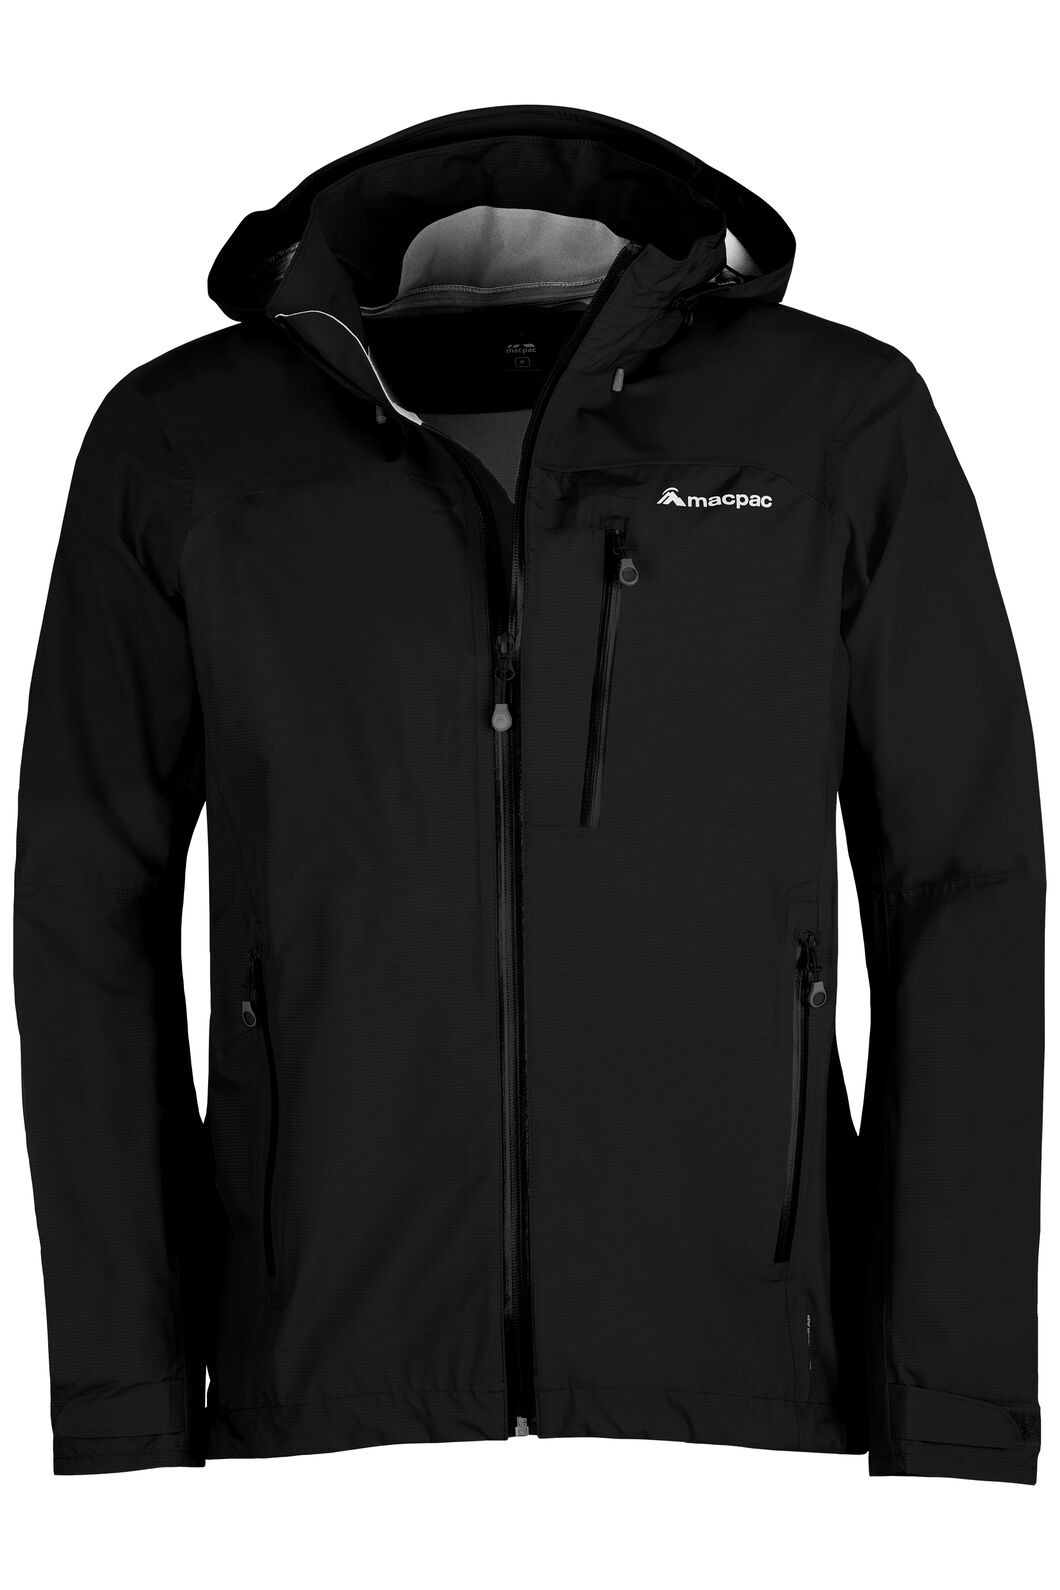 Macpac Traverse Pertex® Shield Rain Jacket V2 - Men's, Black, hi-res